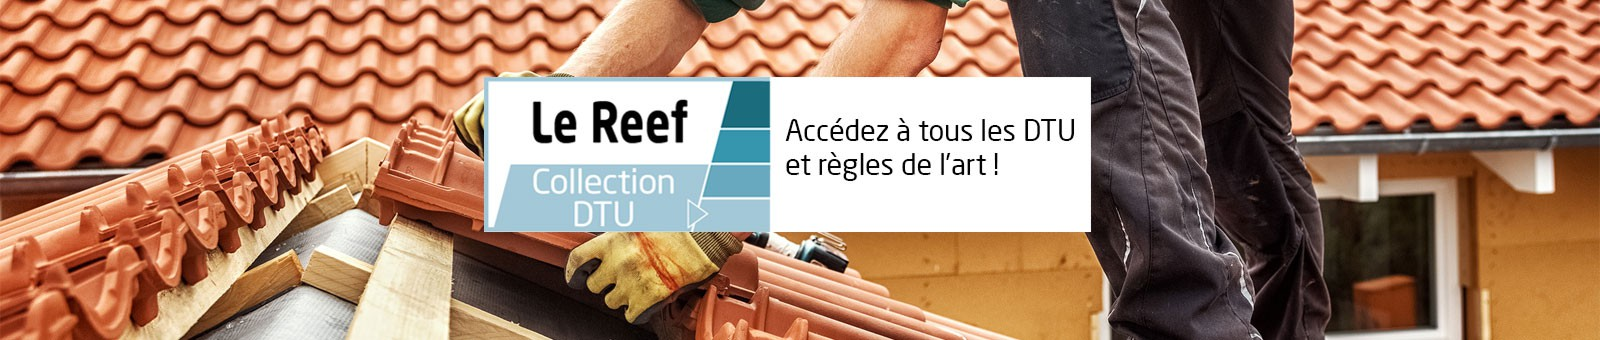 Le Reef Collection DTU